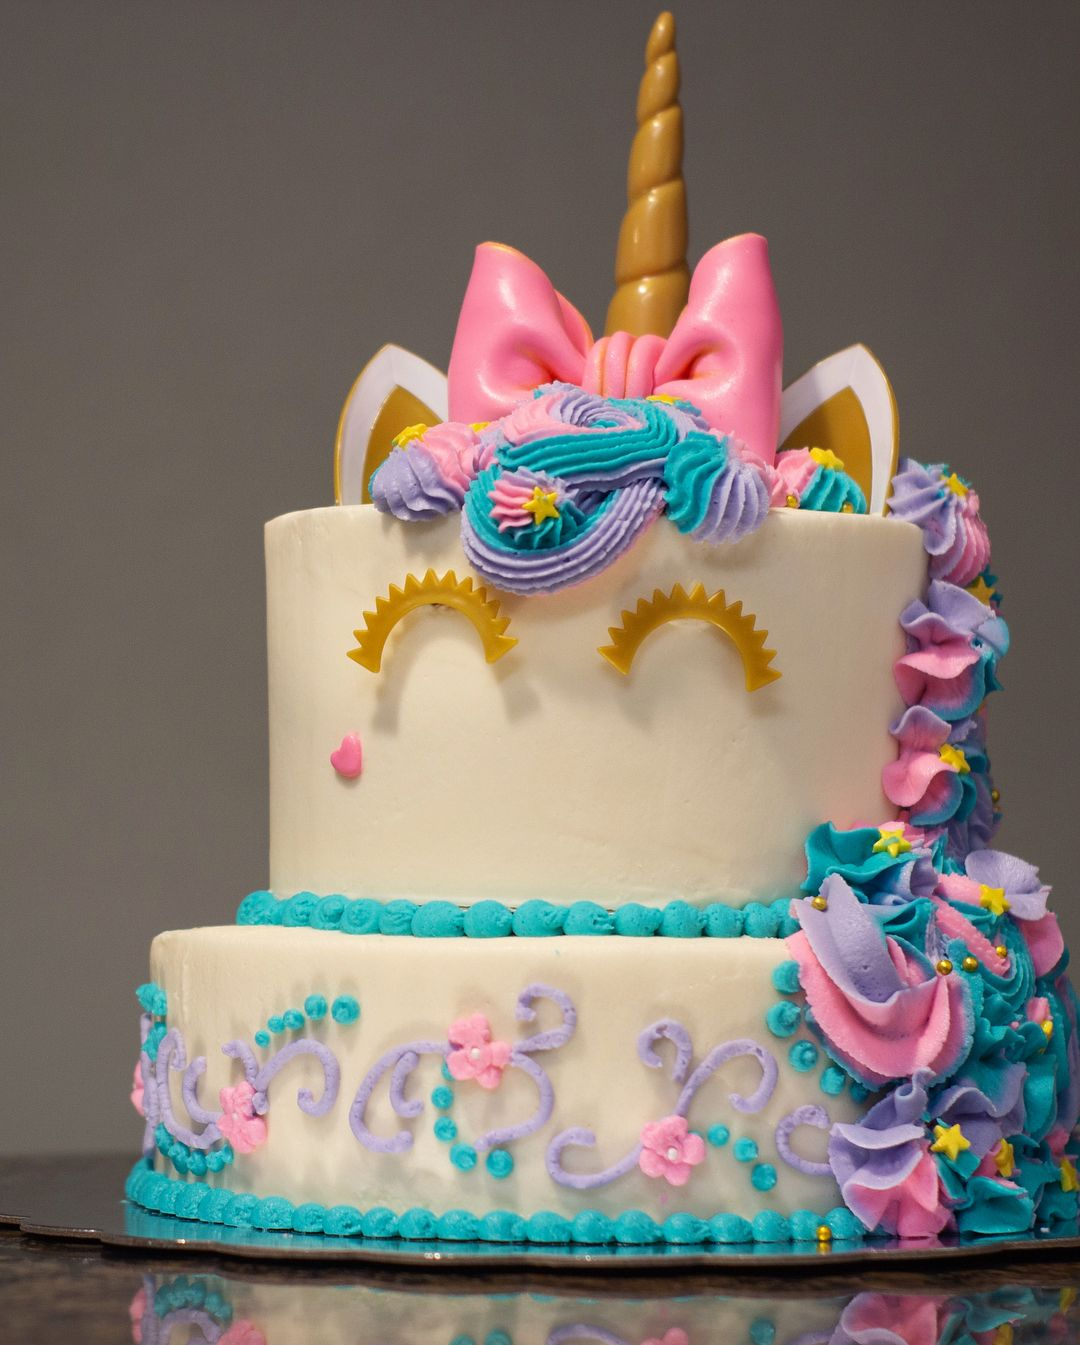 This Cake Is For A Very Sweet Little Girl Who Not Only Loves